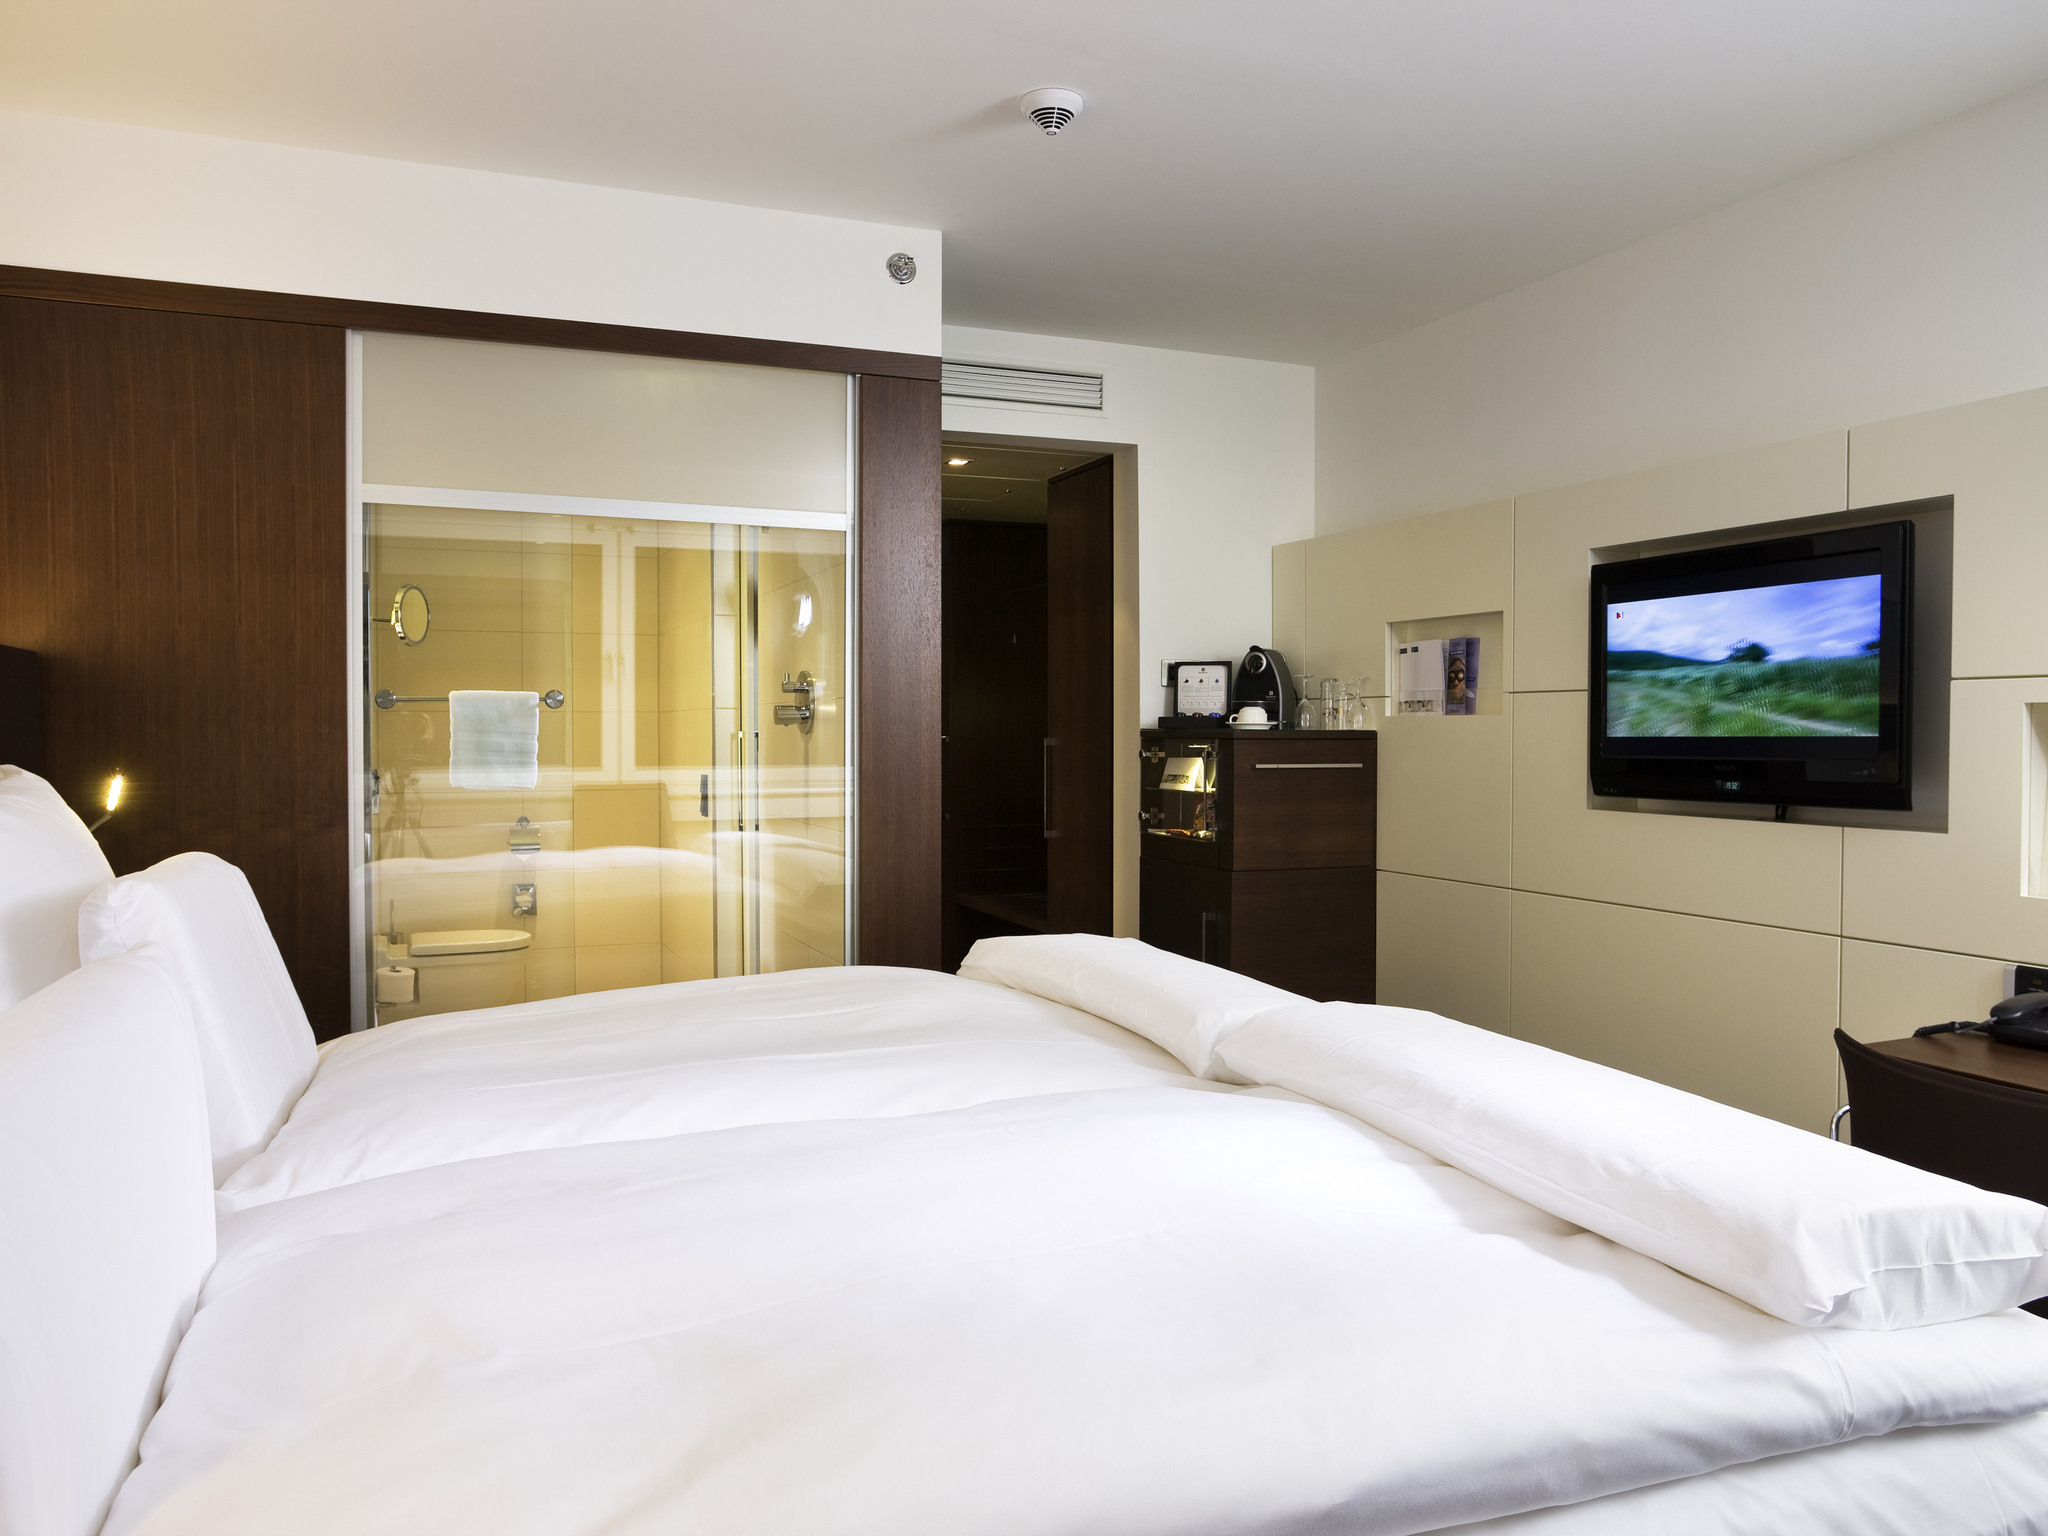 Hotel pullman cologne book your hotel in cologne now for Koln zimmer